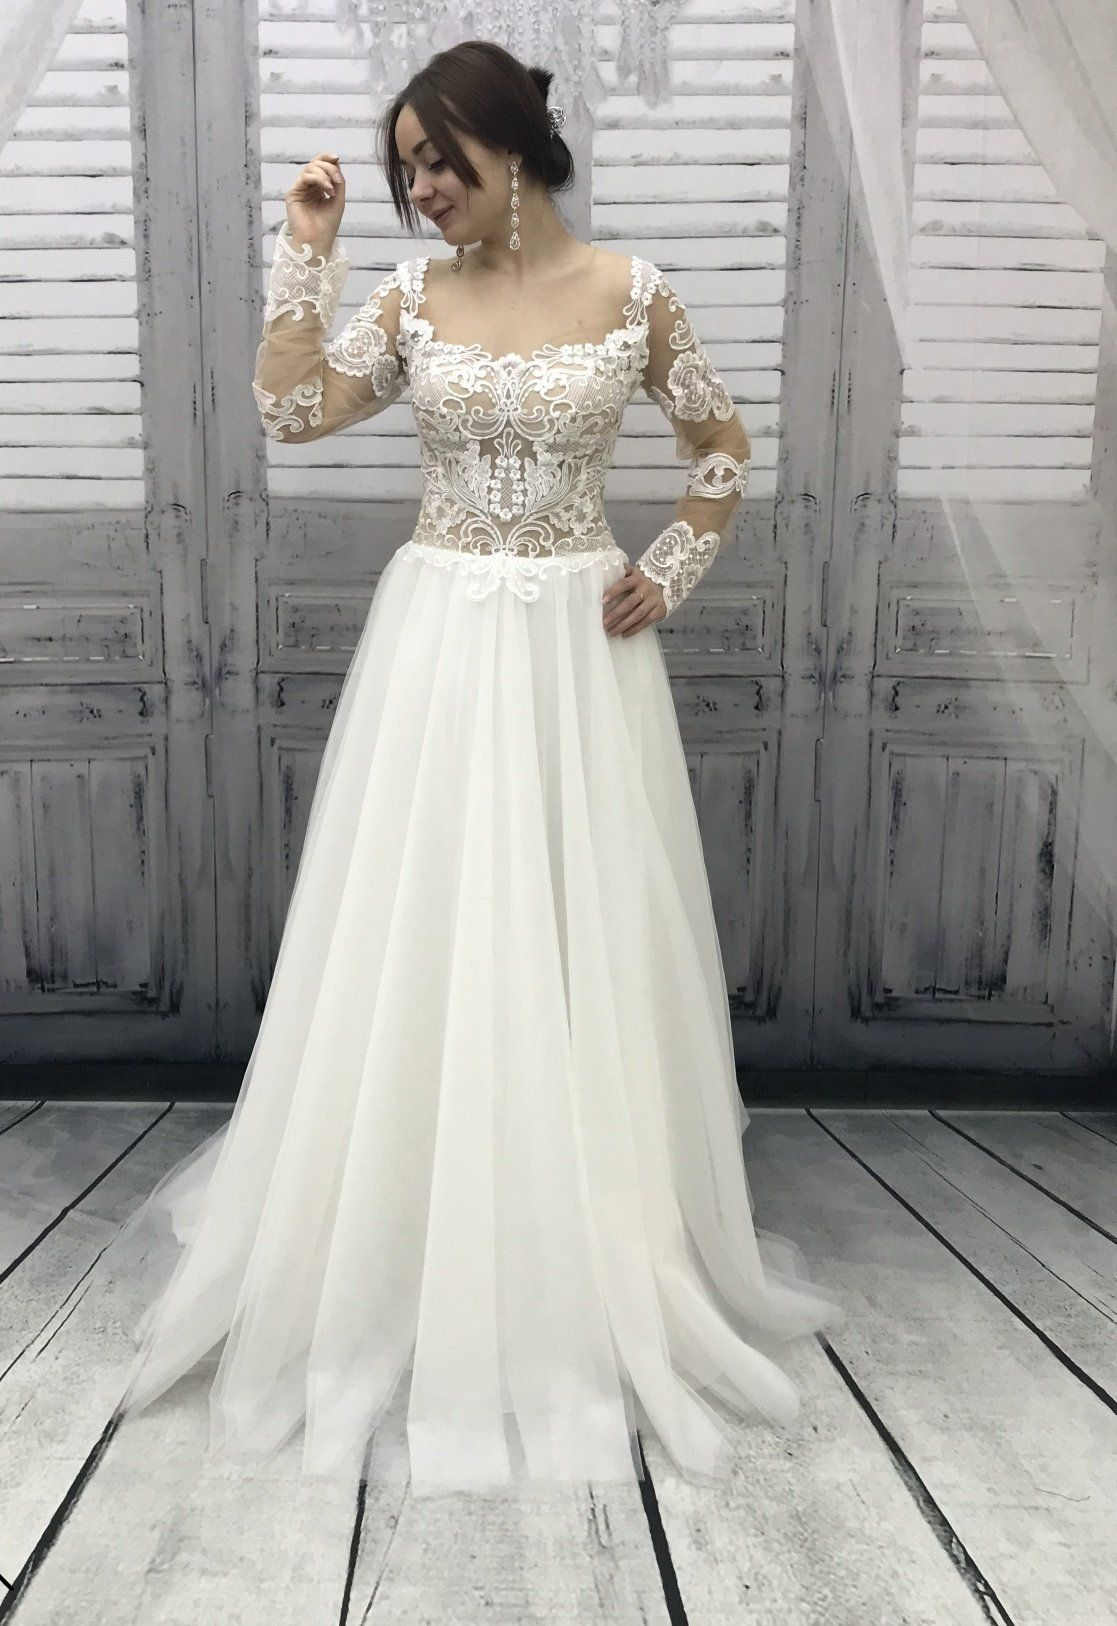 3 Swift Tips And Tricks Wedding Dresses High Neck Beaded Pink Robeswedding 2019 Vintage Blue Accent: Wedding Dresses With Pink Blue Accents At Websimilar.org